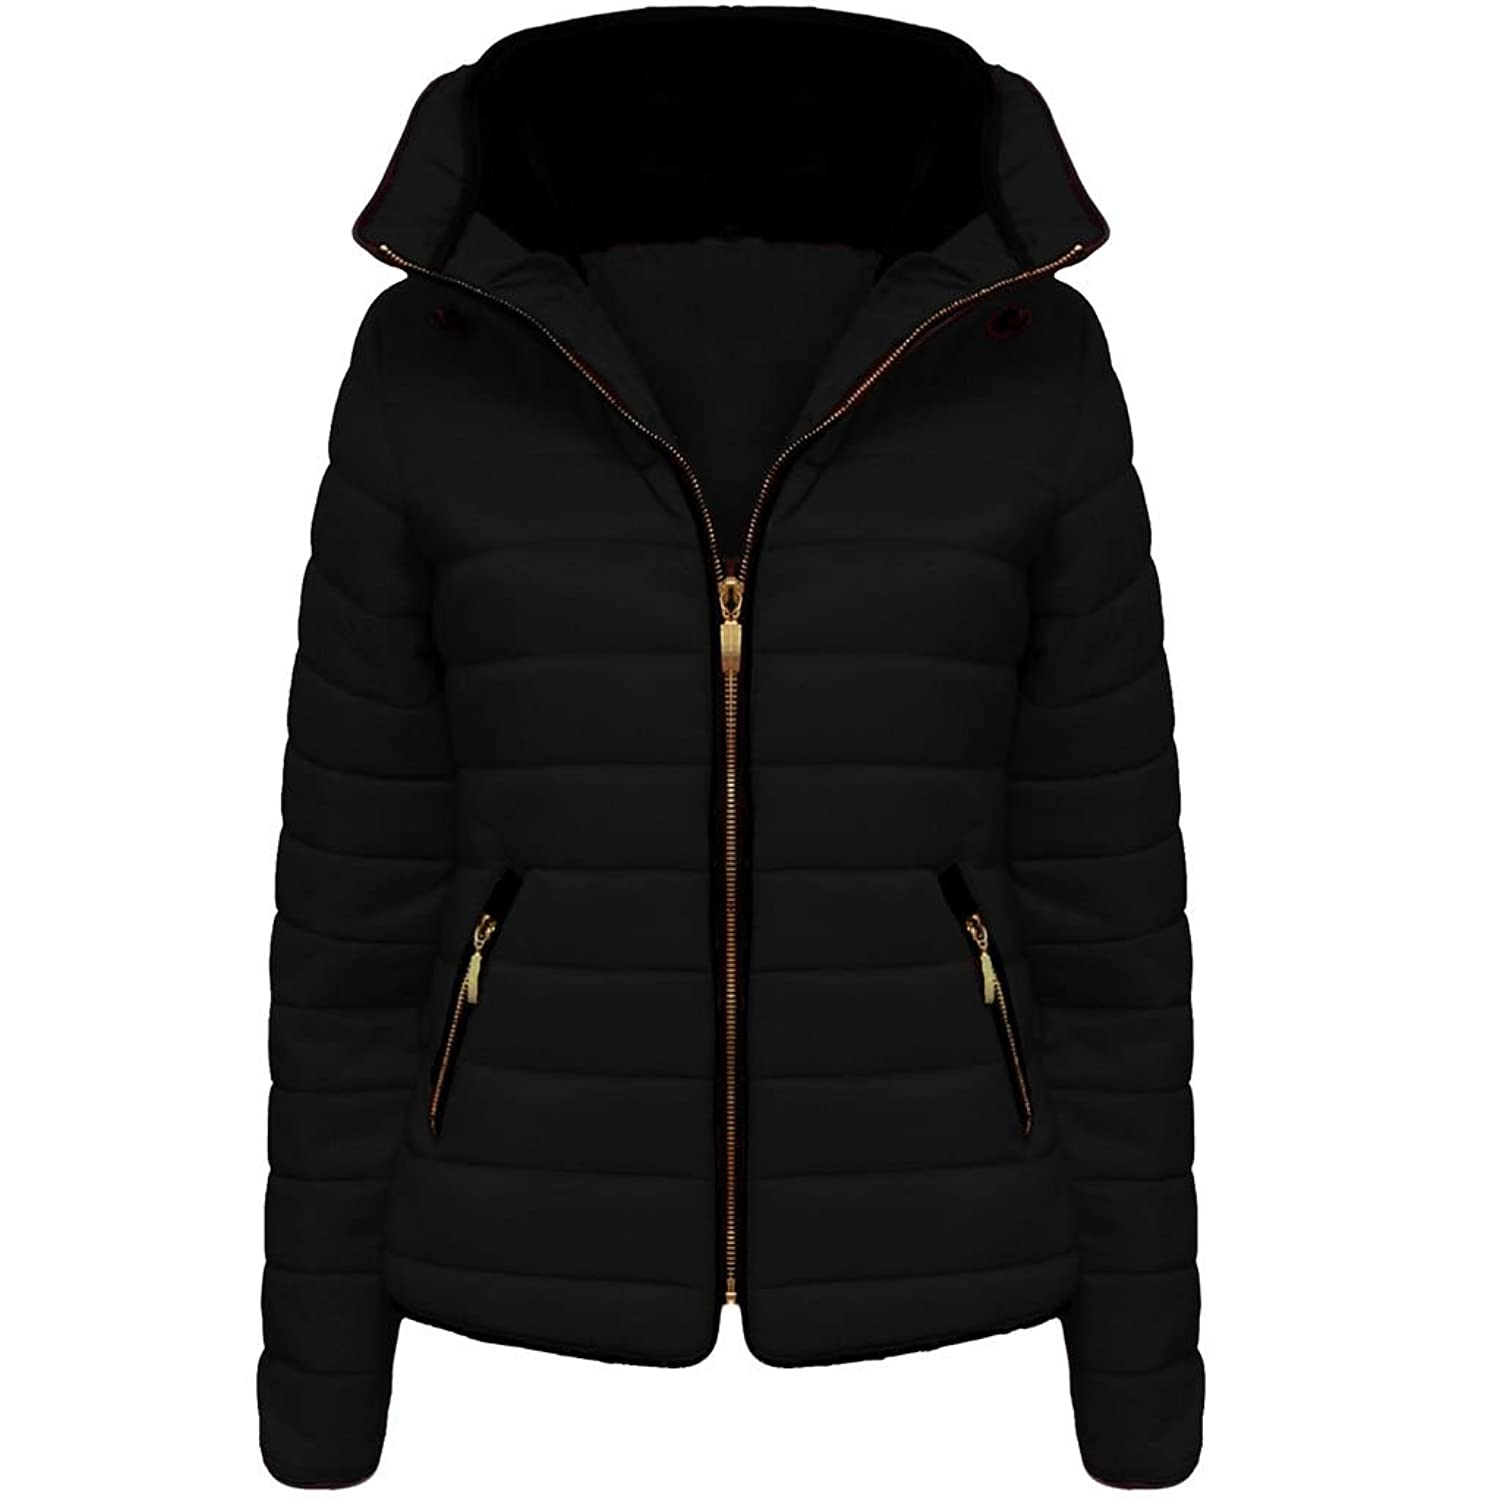 Women's Coats : Amazon.co.uk